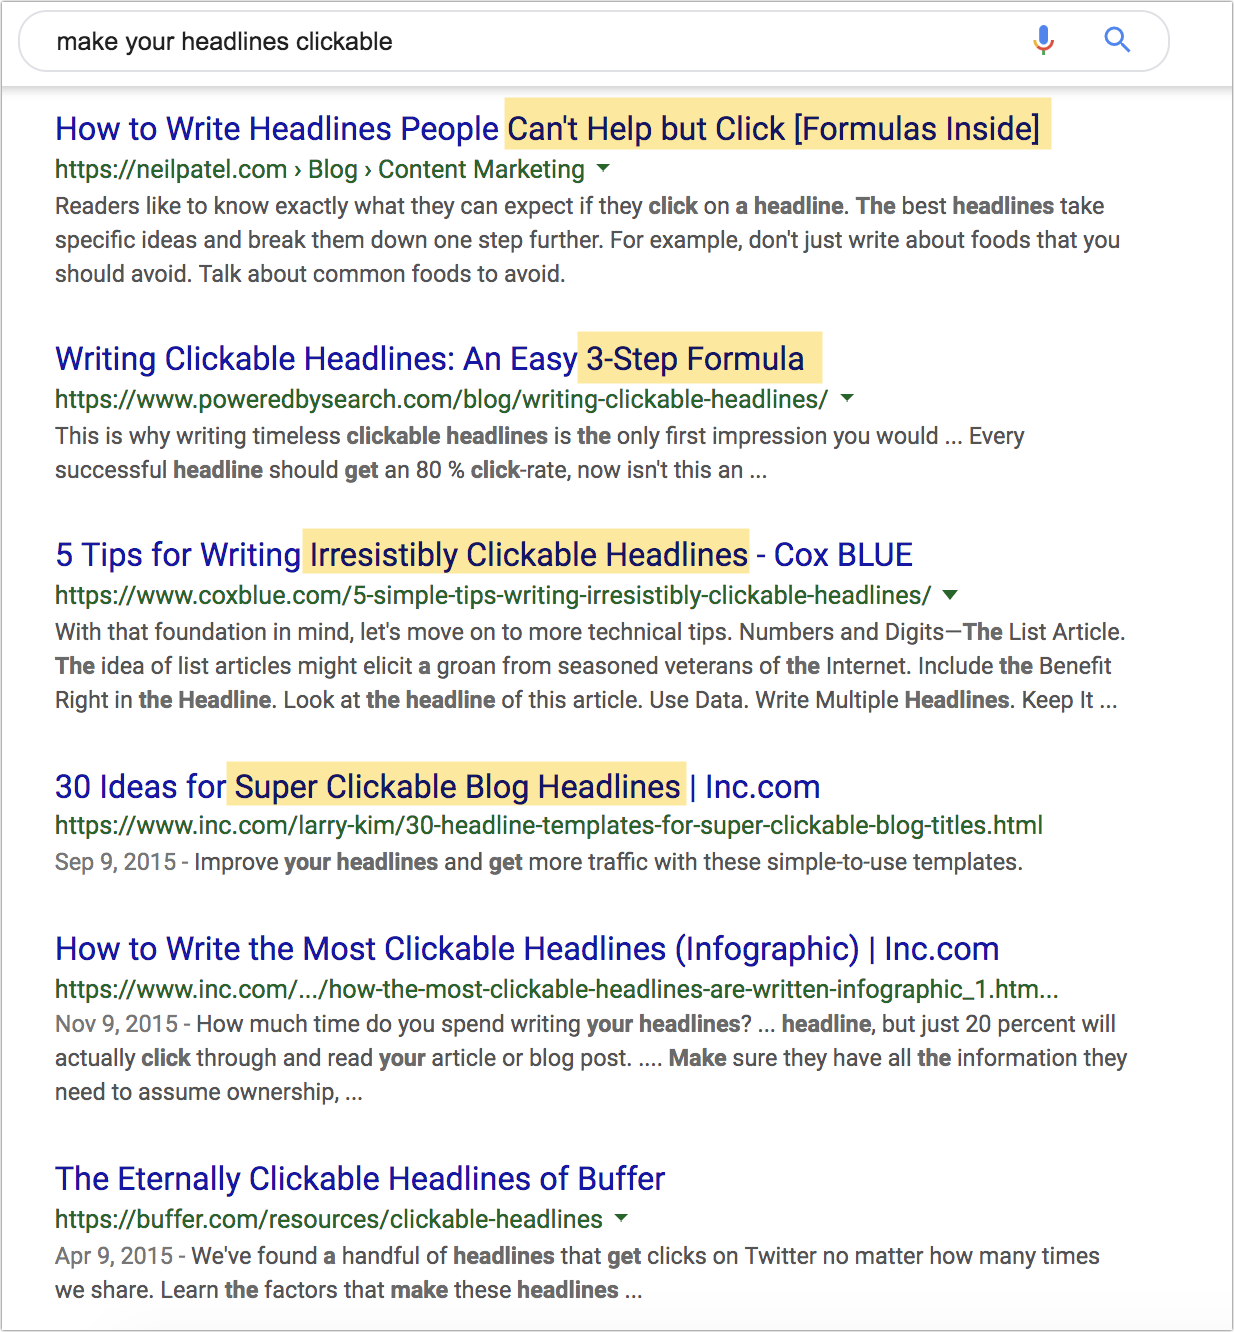 example of headlines in google search results.